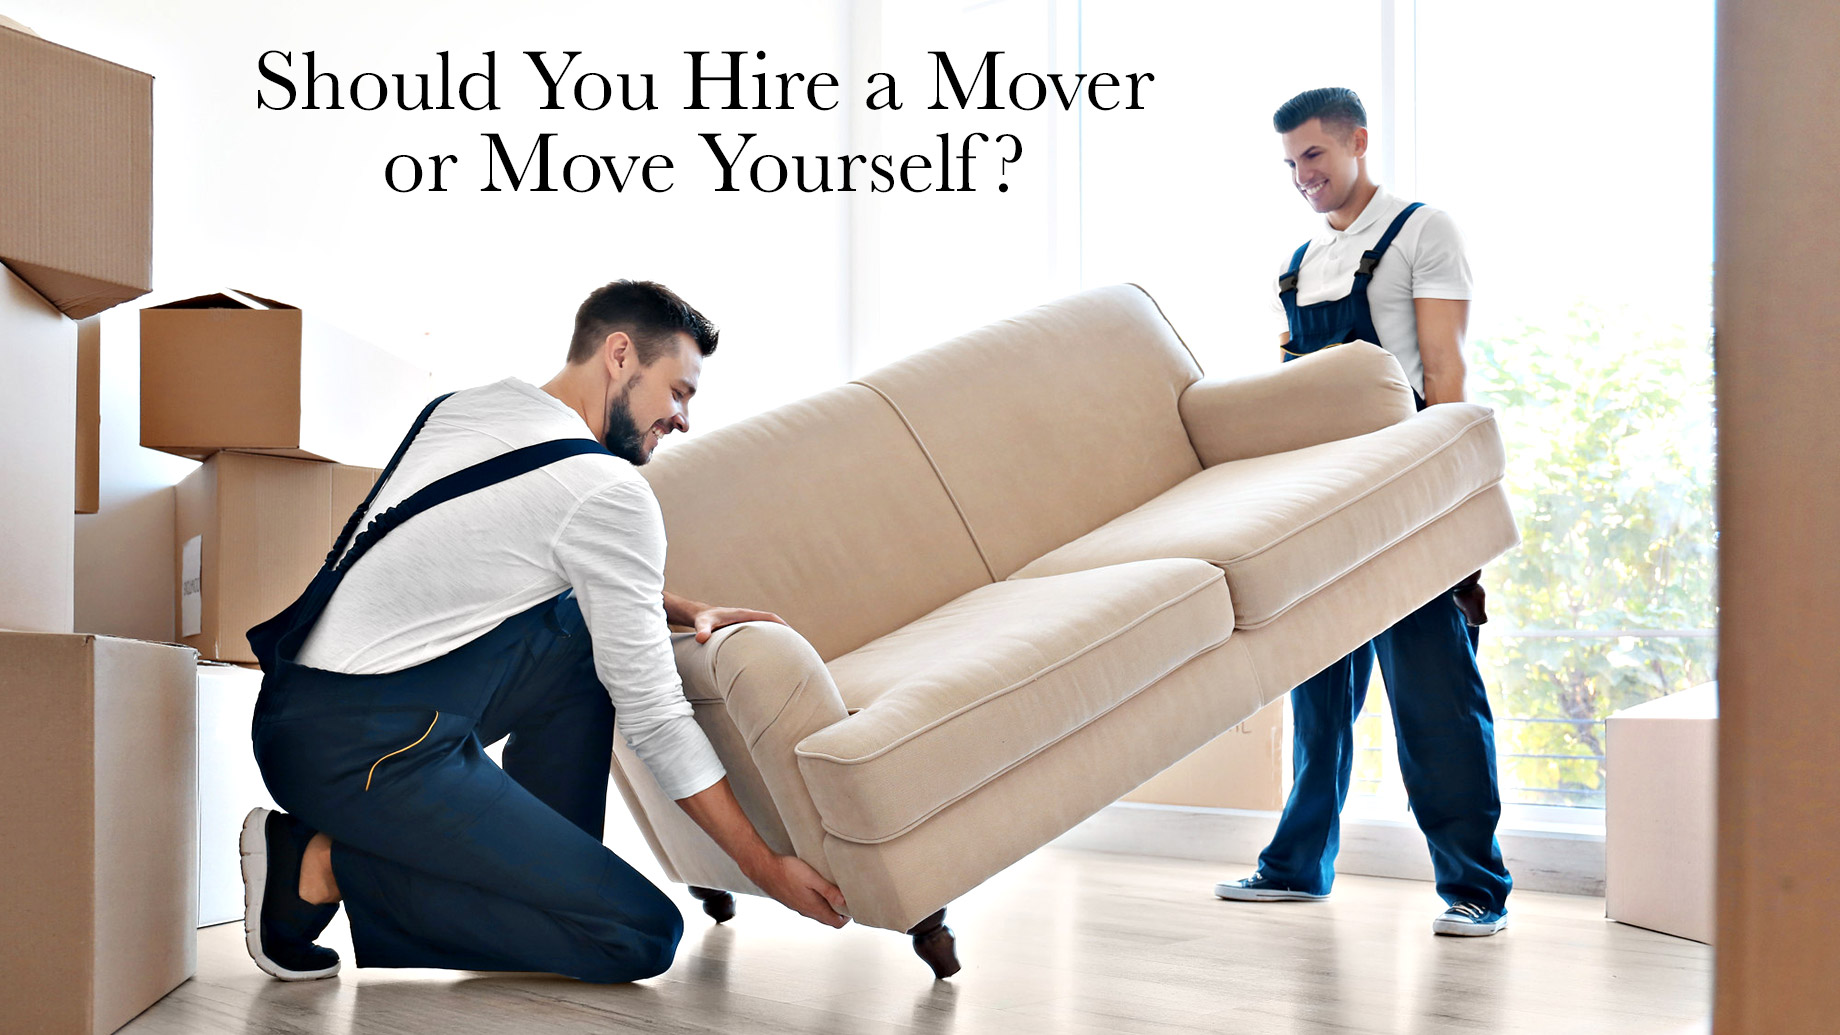 Should You Hire a Mover or Move Yourself?